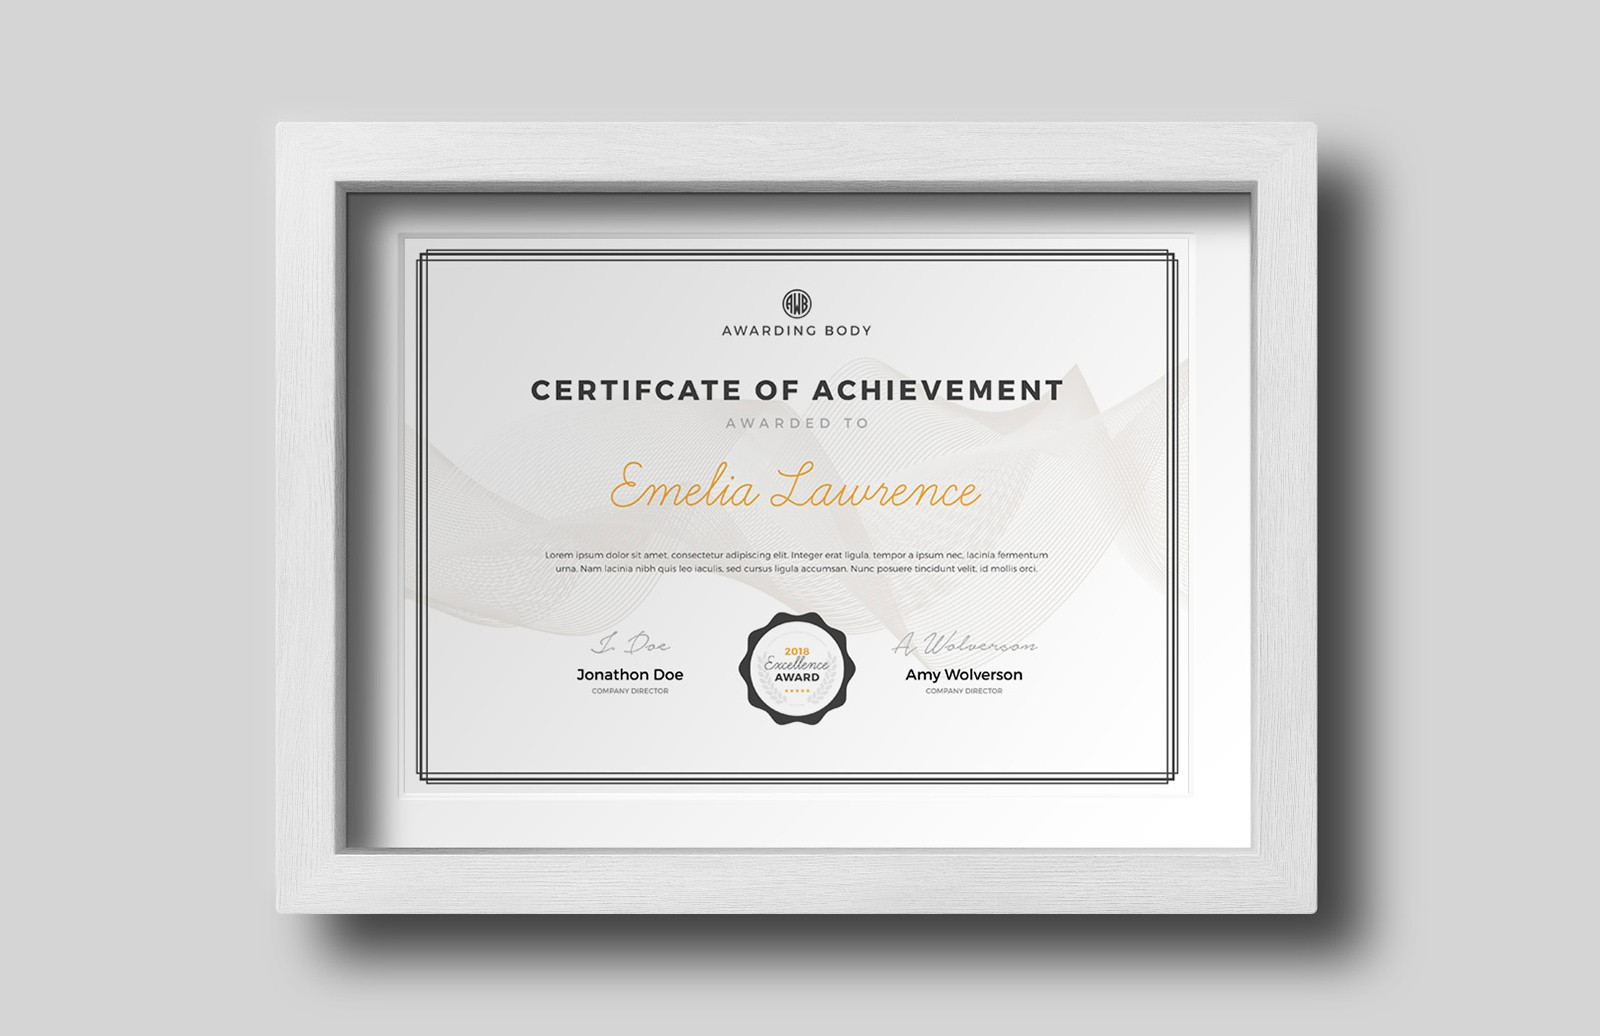 Award certificate template for photoshop medialoot certificate of achievement template preview 1b xflitez Gallery